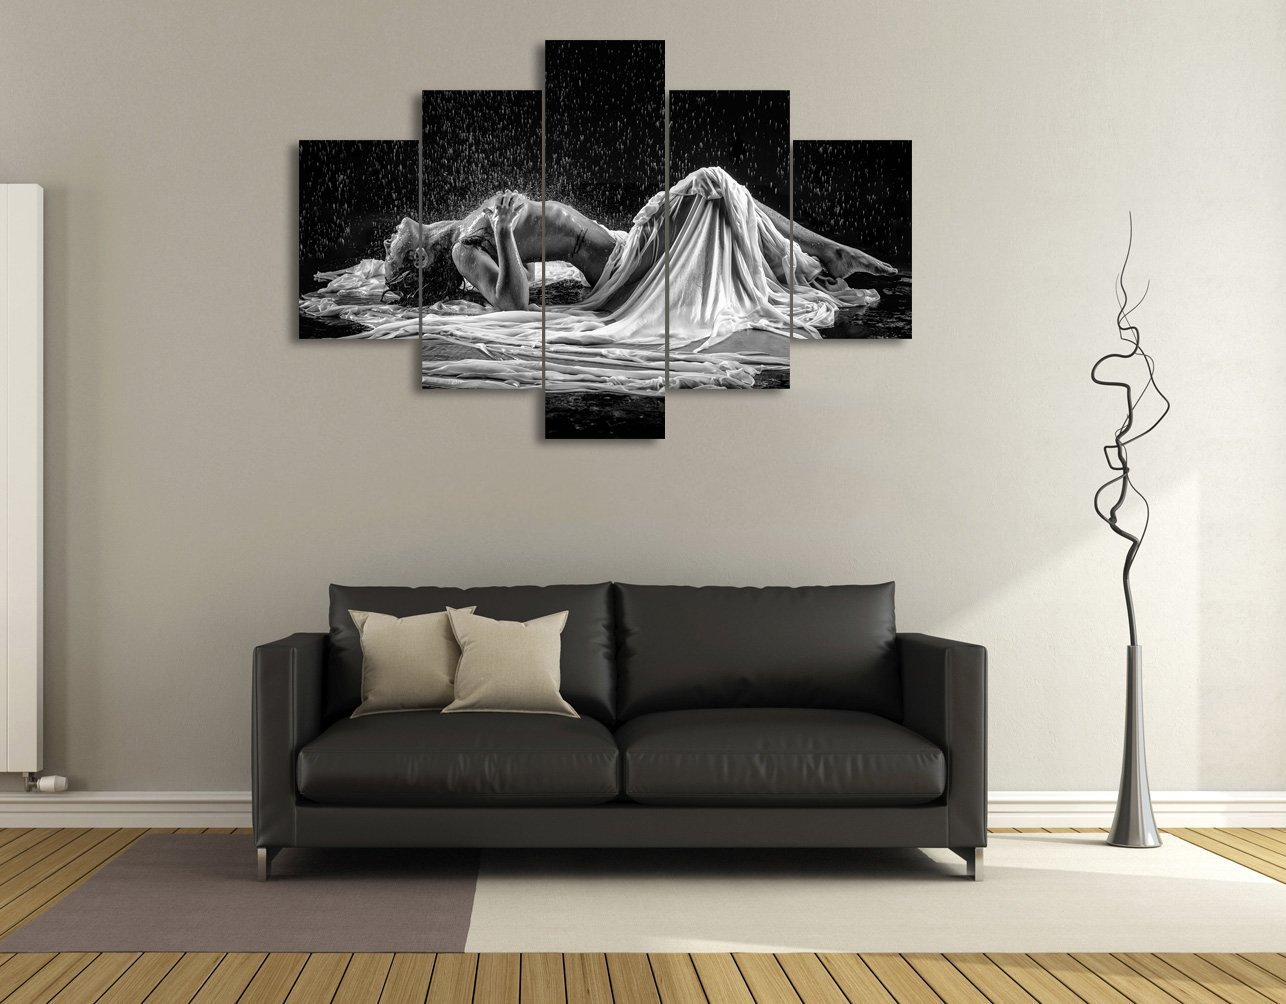 Hot Sexual Girl 5 PCS Wall Art Painting on Canvas for Couples Nude Woman Pictures Naked Body Nude lady Modern for Living Room Home Decor Gallery-wrapped Artwork Framed Ready to Hang(60''Wx40''H)